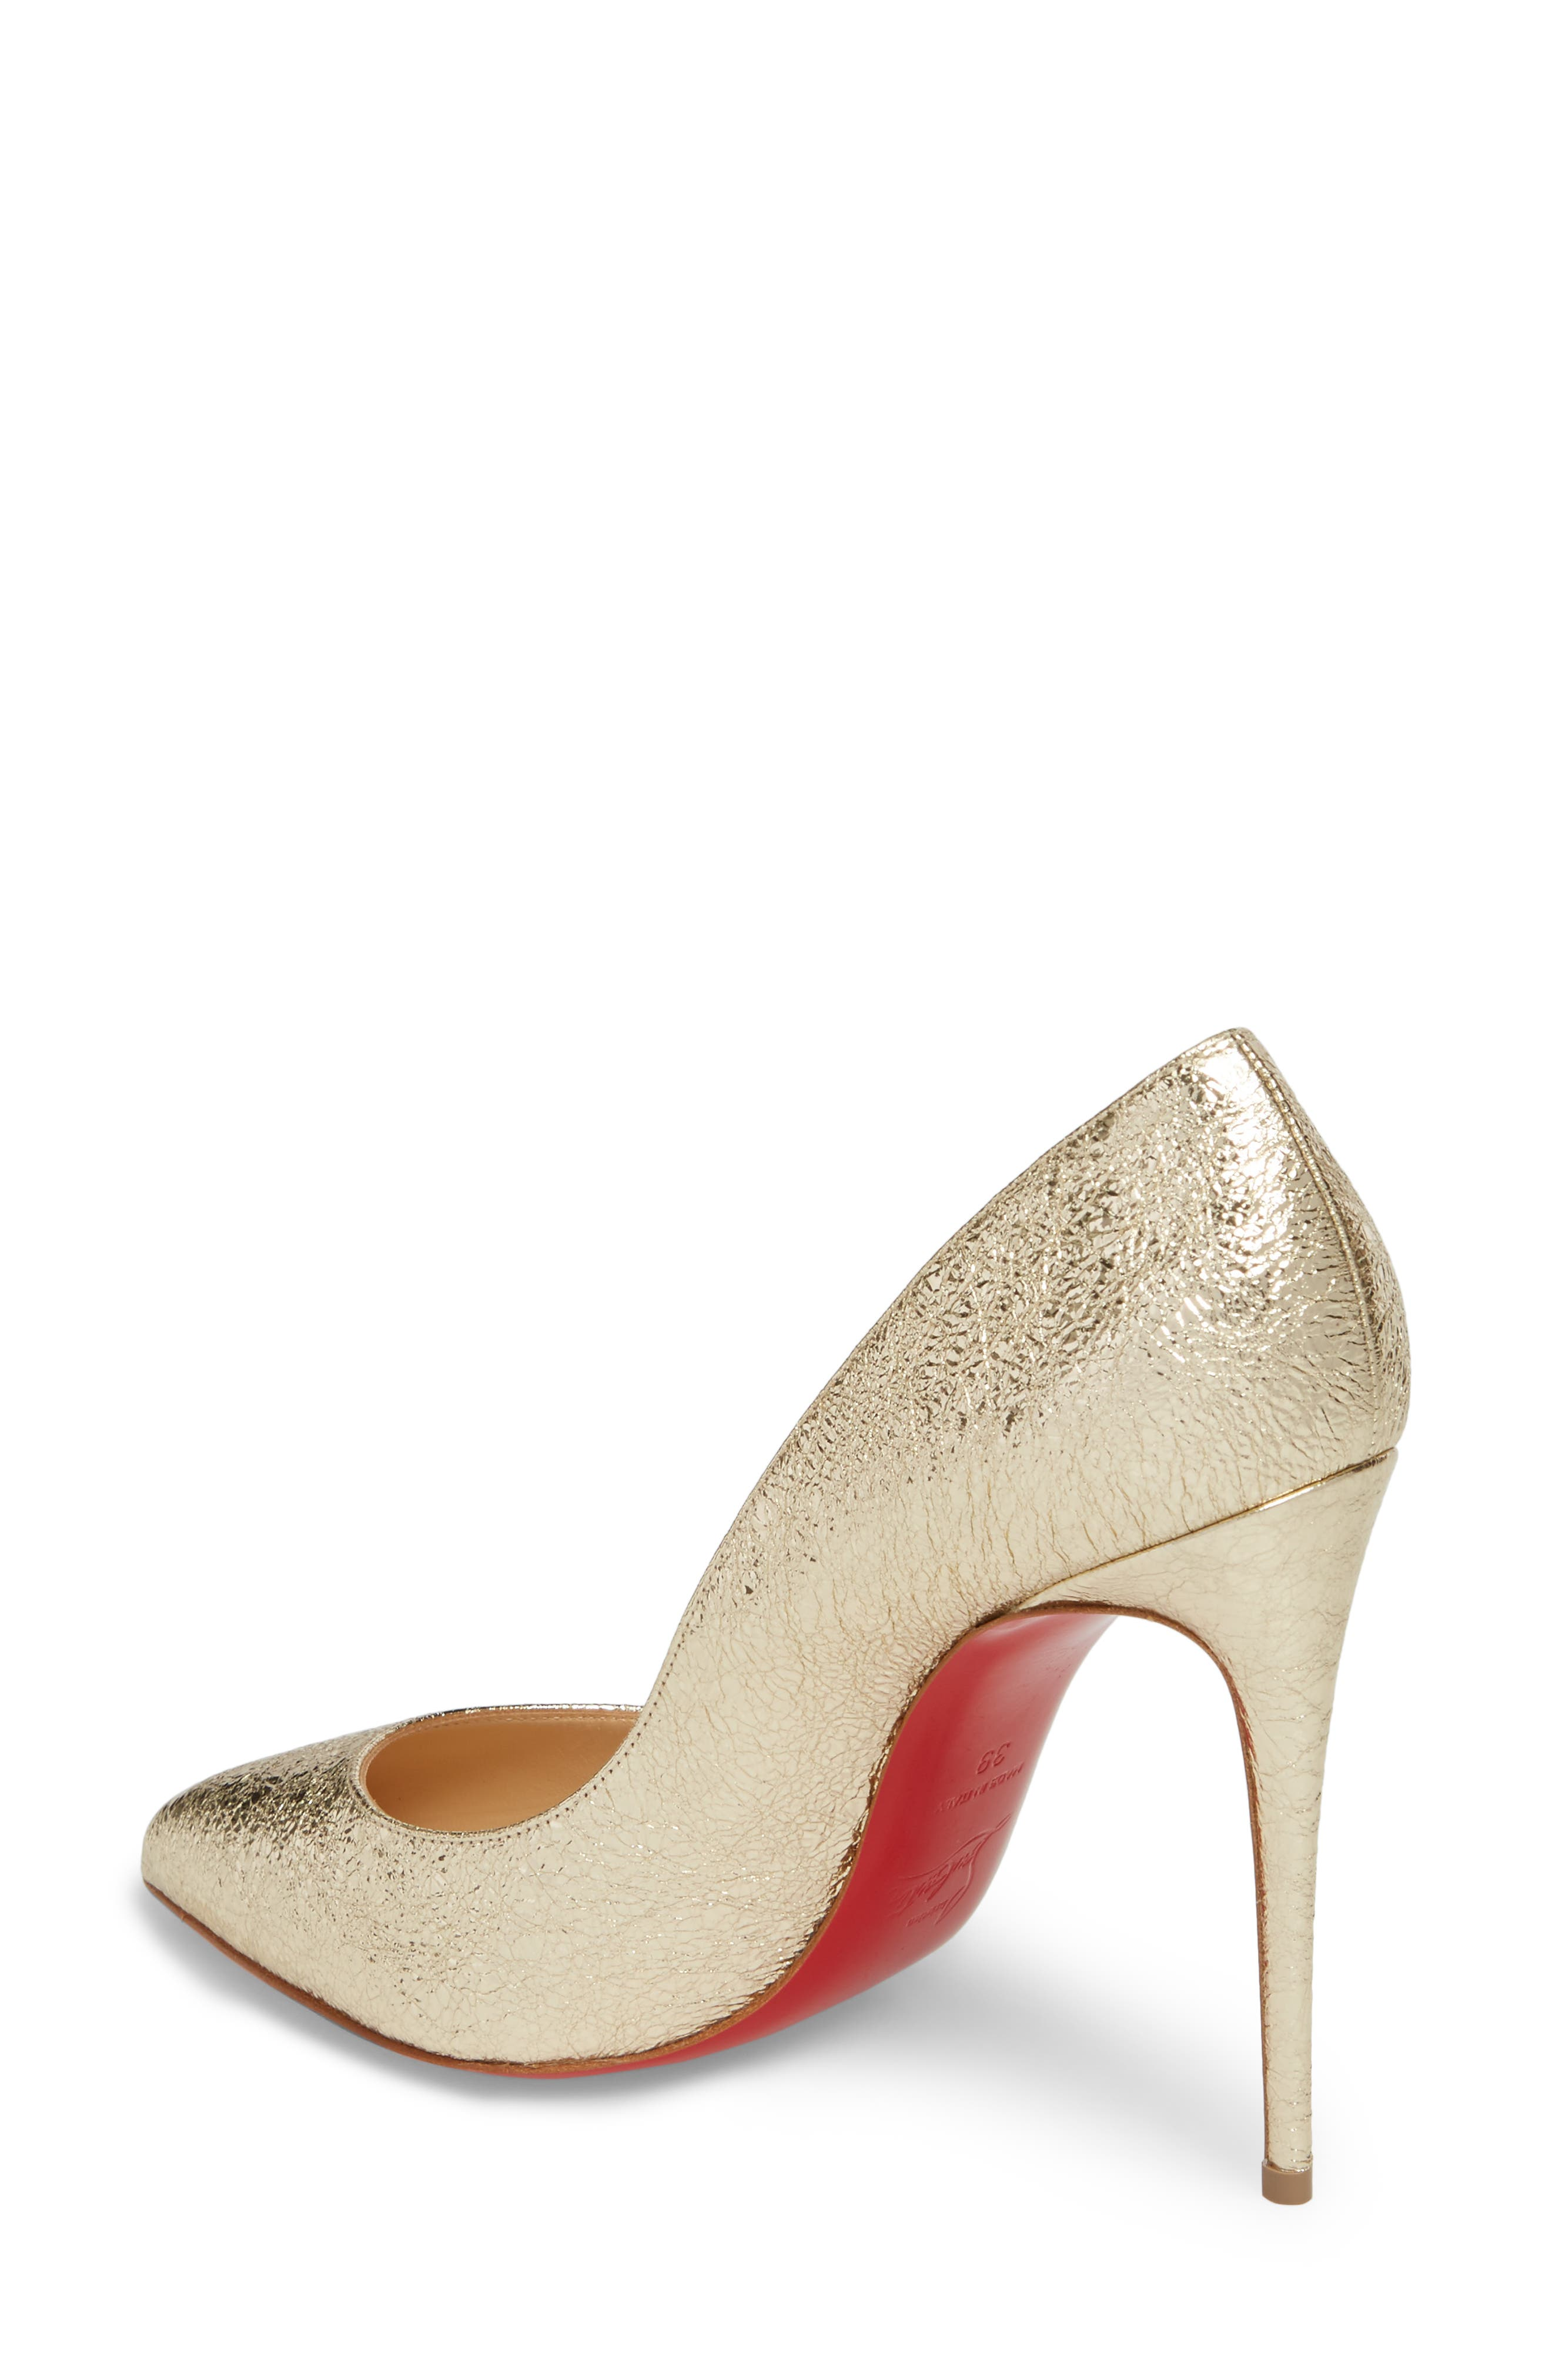 Pigalle Follies Pointy Toe Pump,                             Alternate thumbnail 2, color,                             Platine